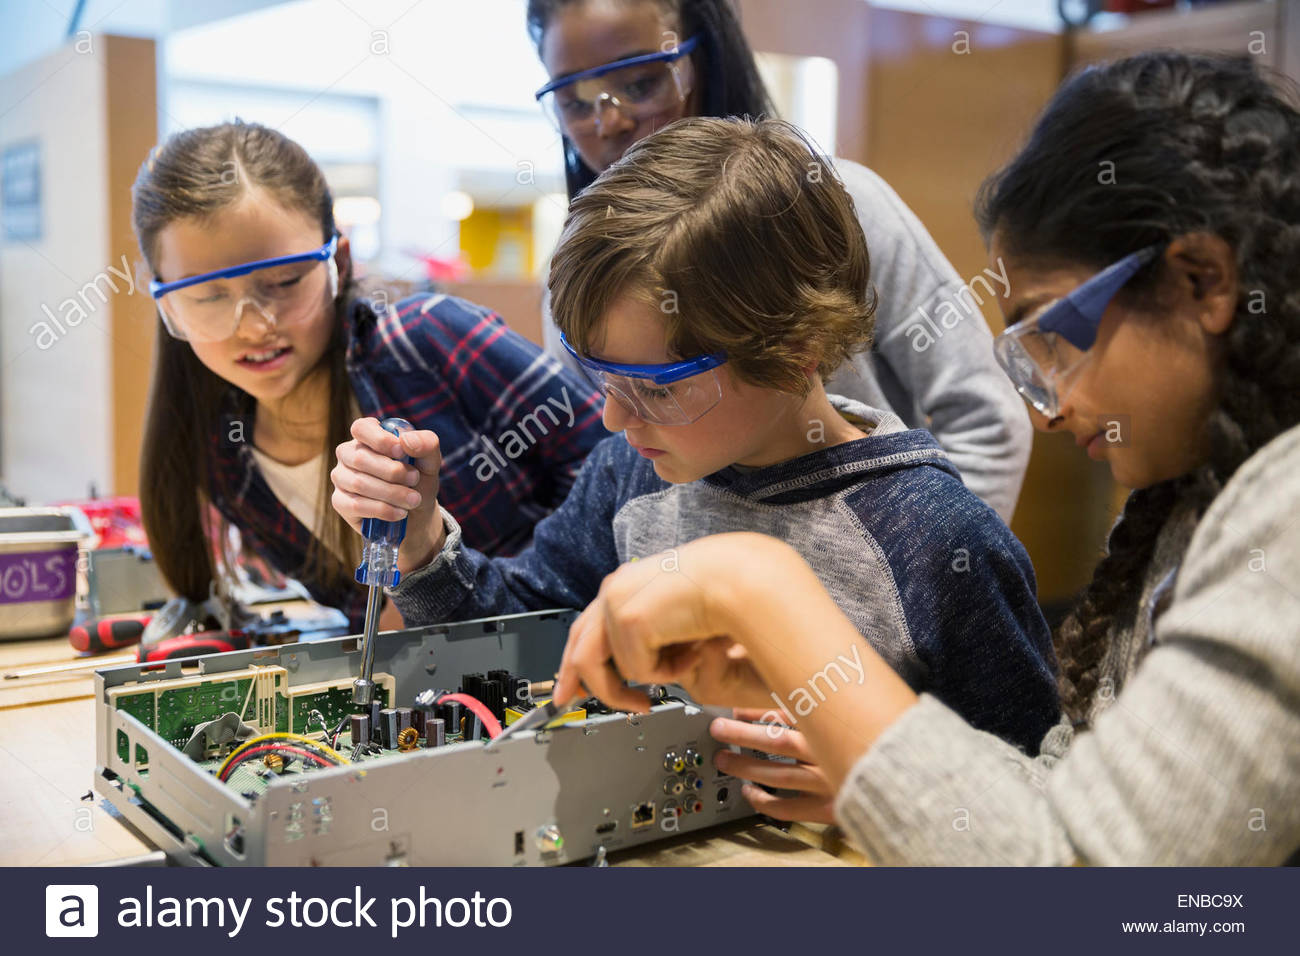 Students in goggles assembling electronics at science center Stock Photo